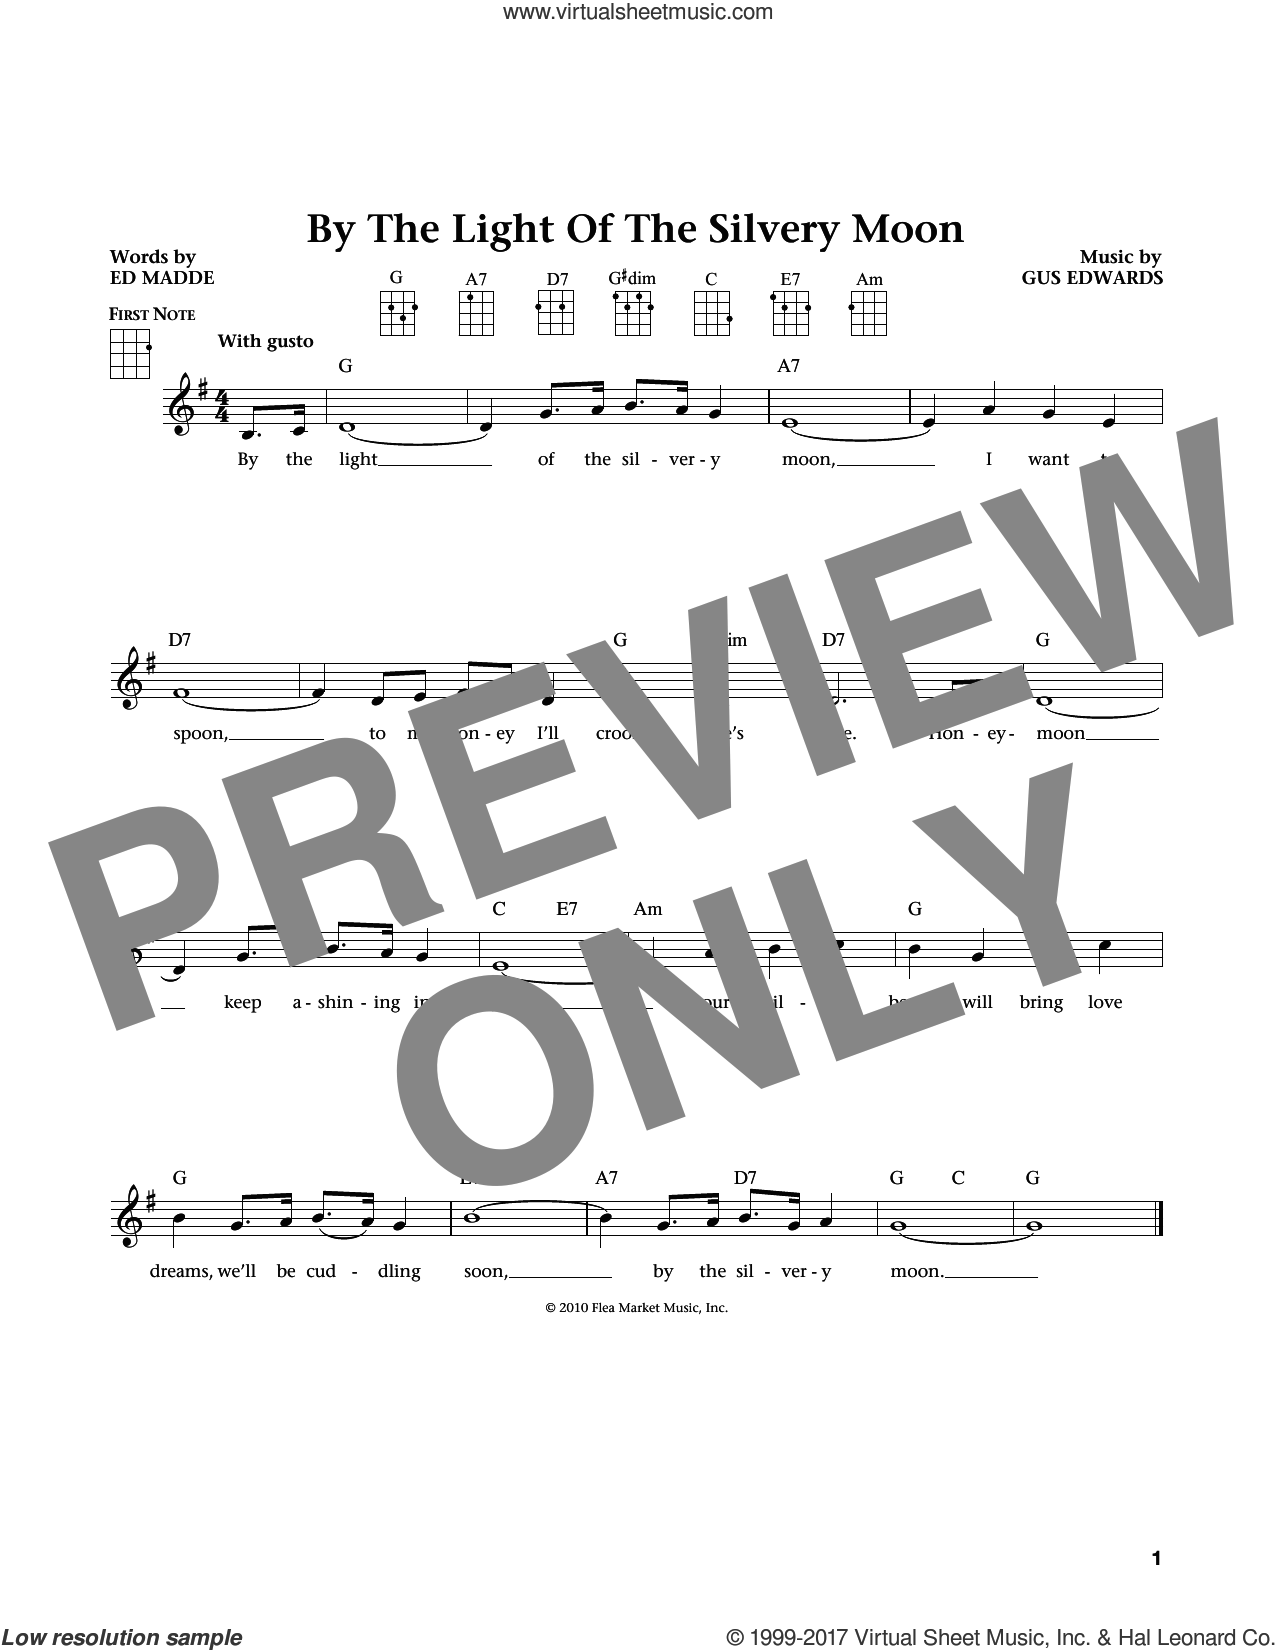 By The Light Of The Silvery Moon (from The Daily Ukulele) (arr. Liz and Jim Beloff) sheet music for ukulele by Jimmy Bowen, Jim Beloff, Liz Beloff, Ed Madden and Gus Edwards, intermediate skill level